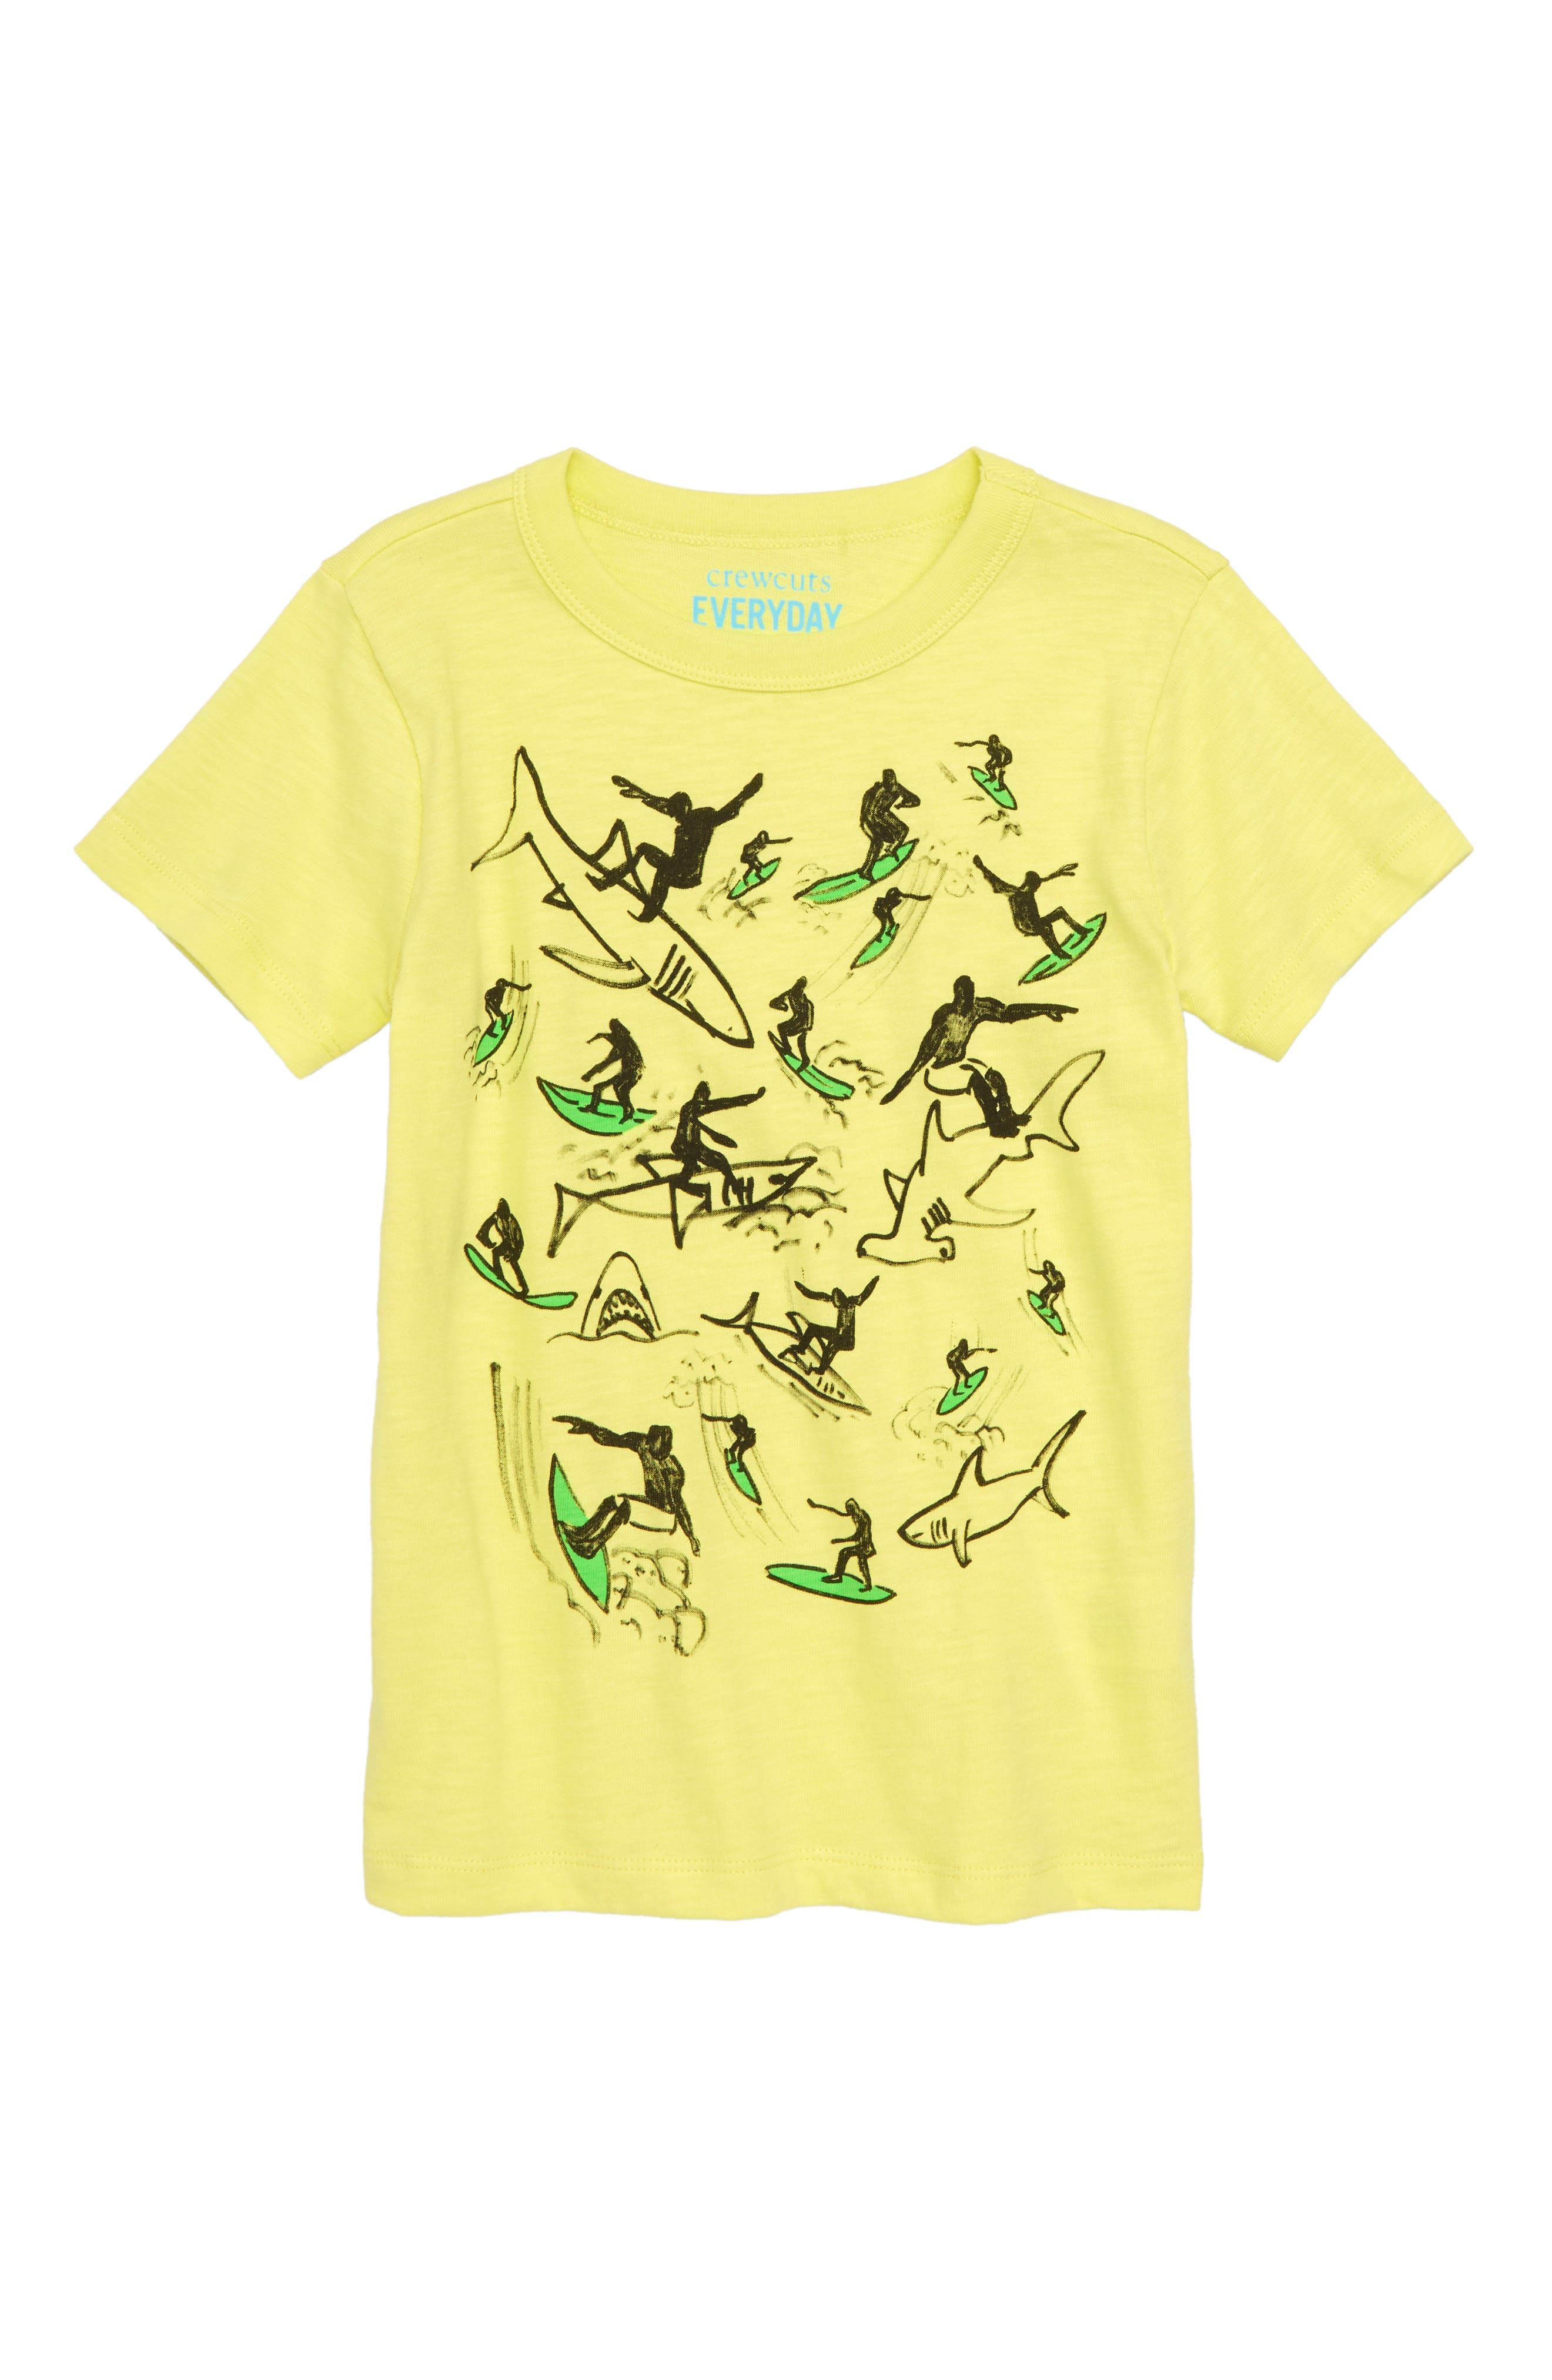 Surfing with Sharks Graphic T-Shirt,                             Main thumbnail 1, color,                             LEMON SORBET